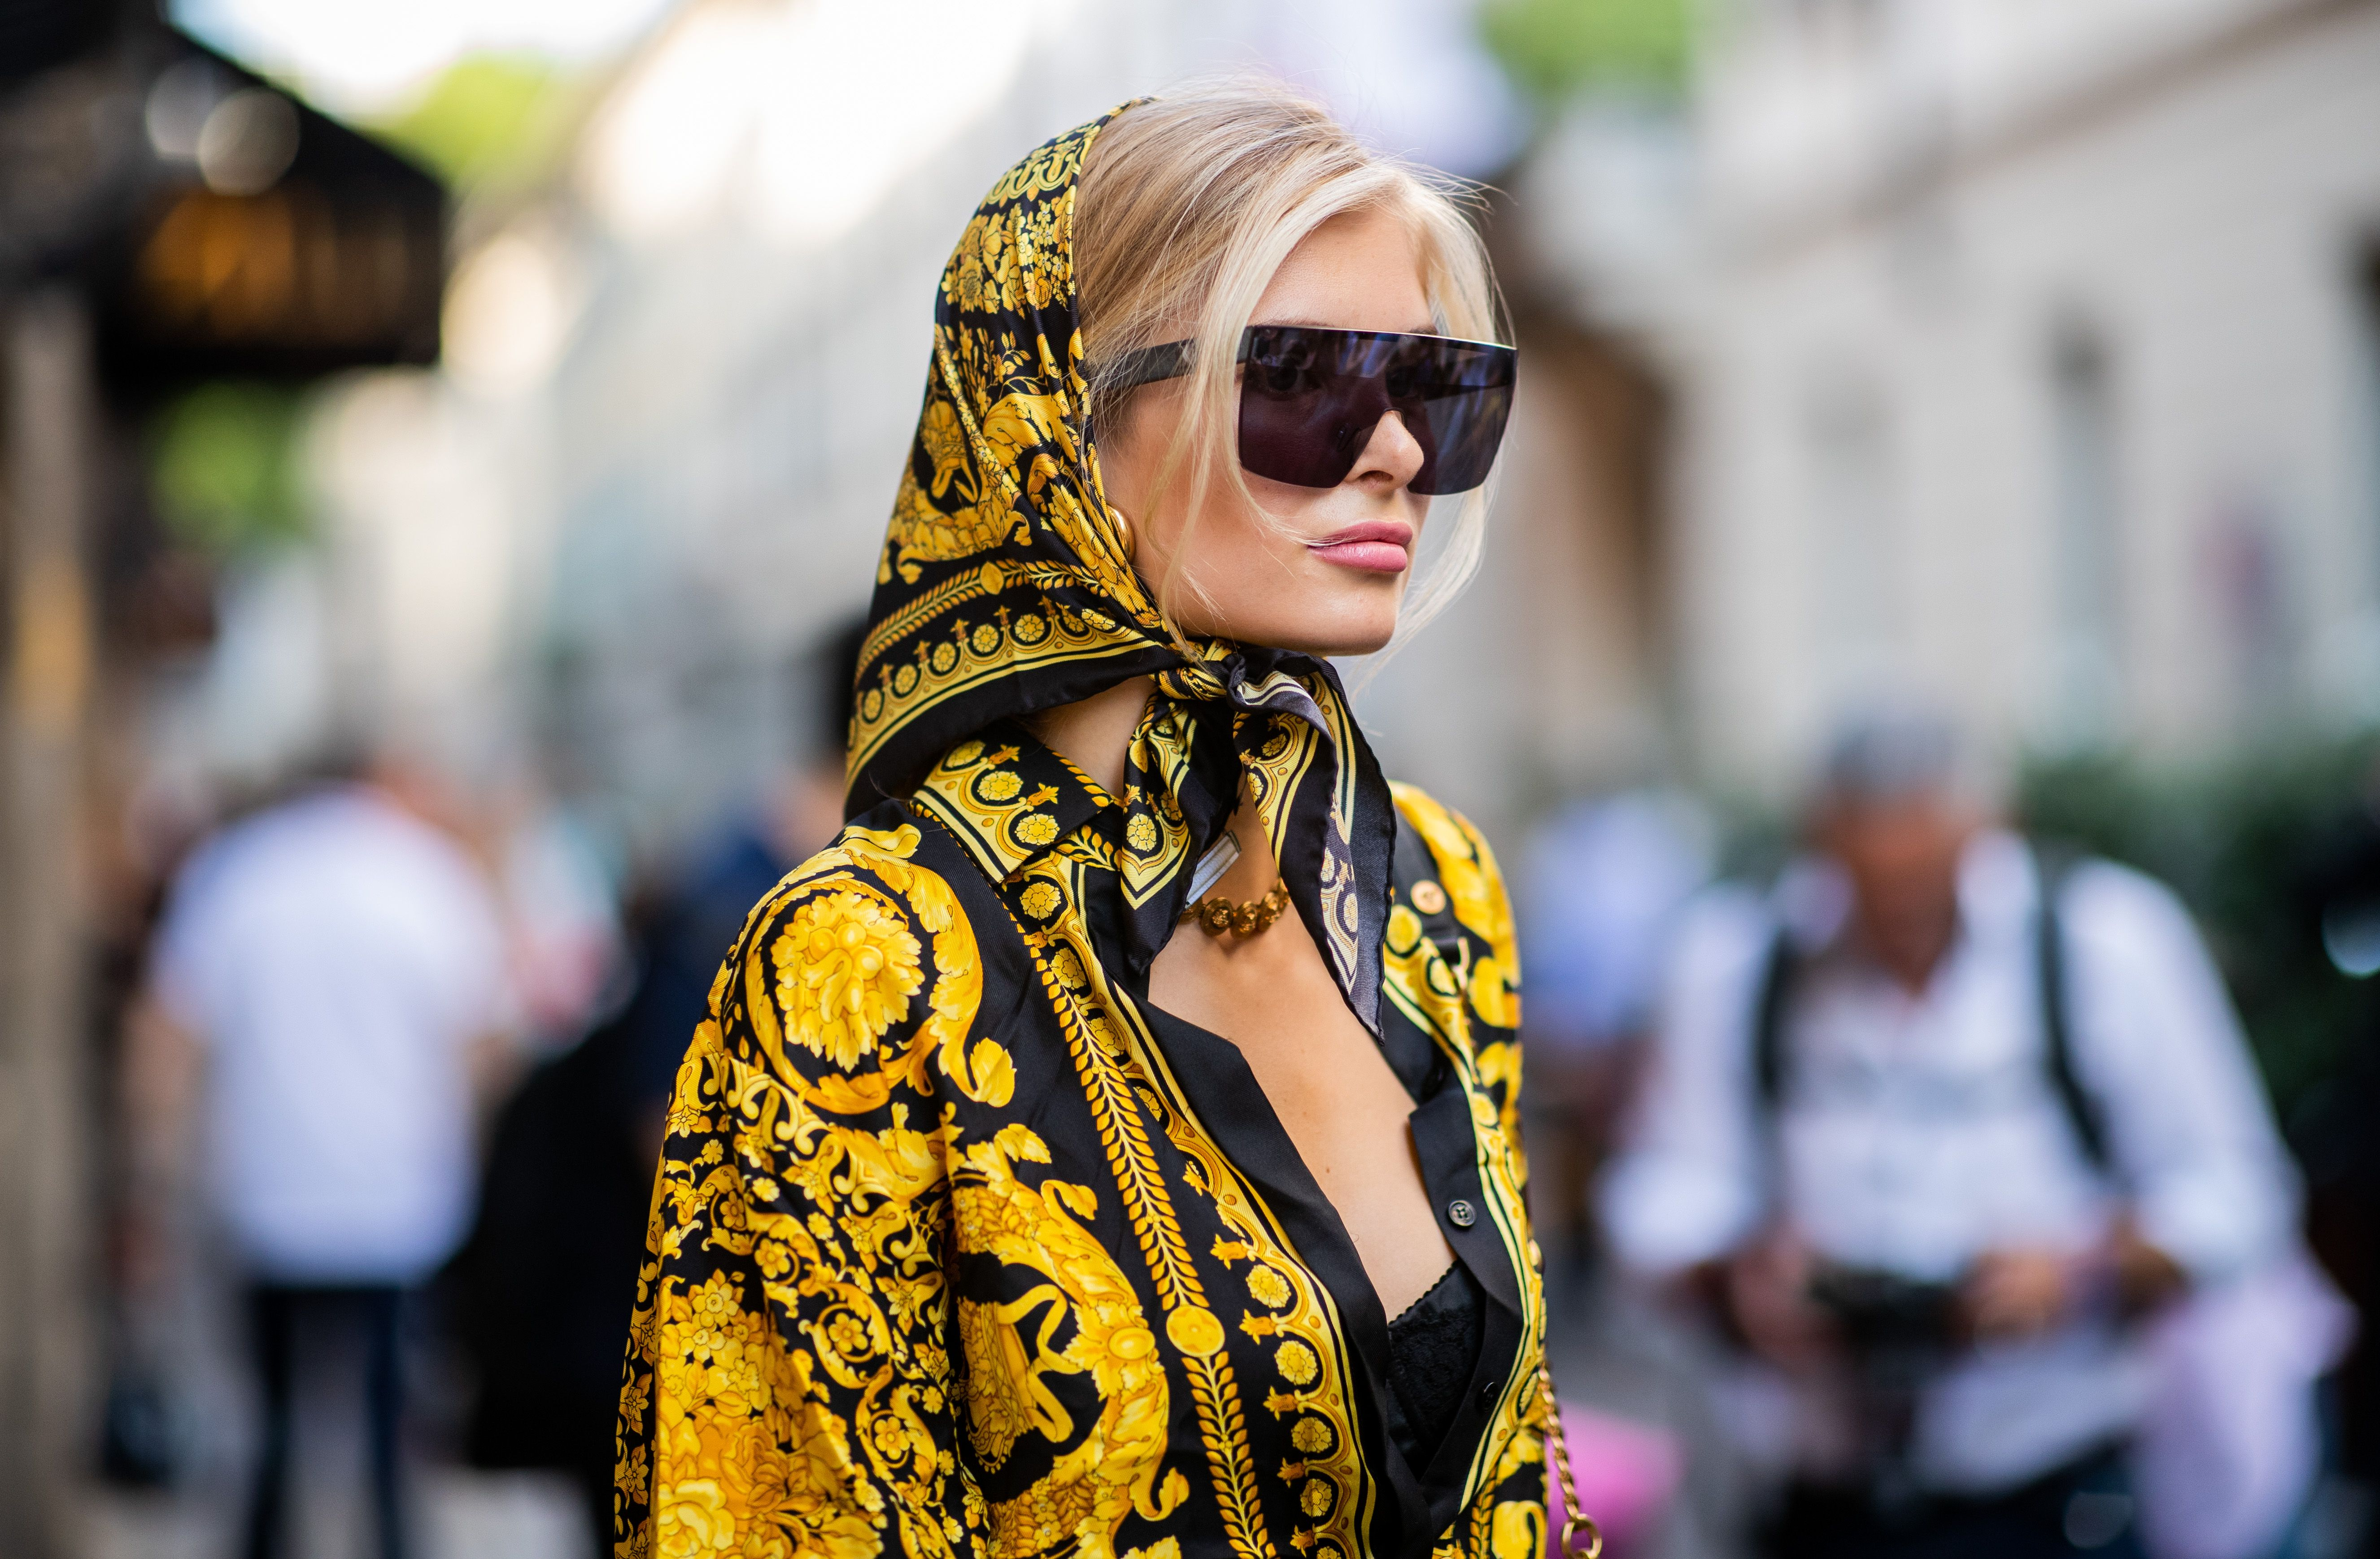 How To Wear A Headscarf According To Your Instagram Faves